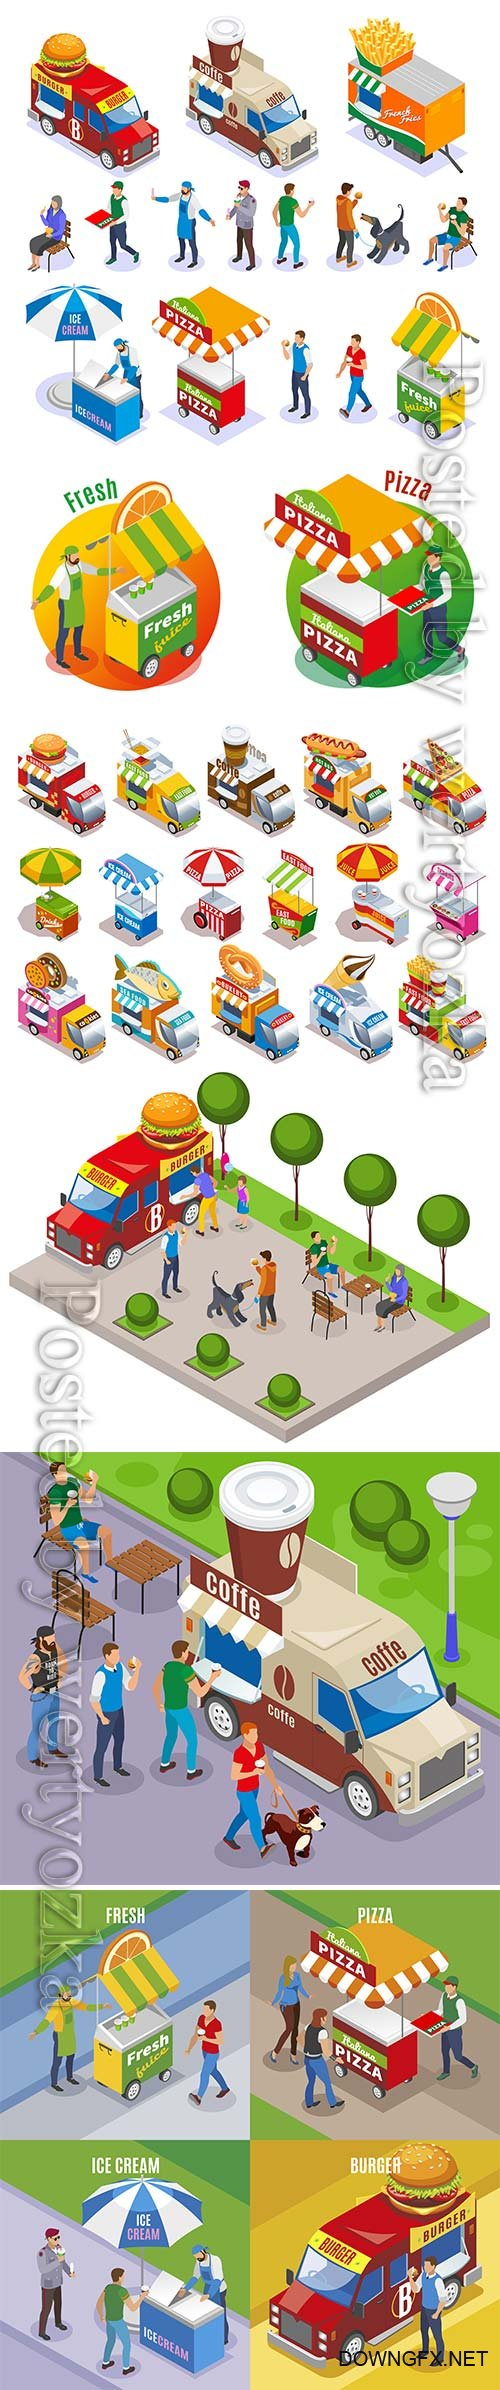 Street food carts and vehicle sellers and customers isometric icons set